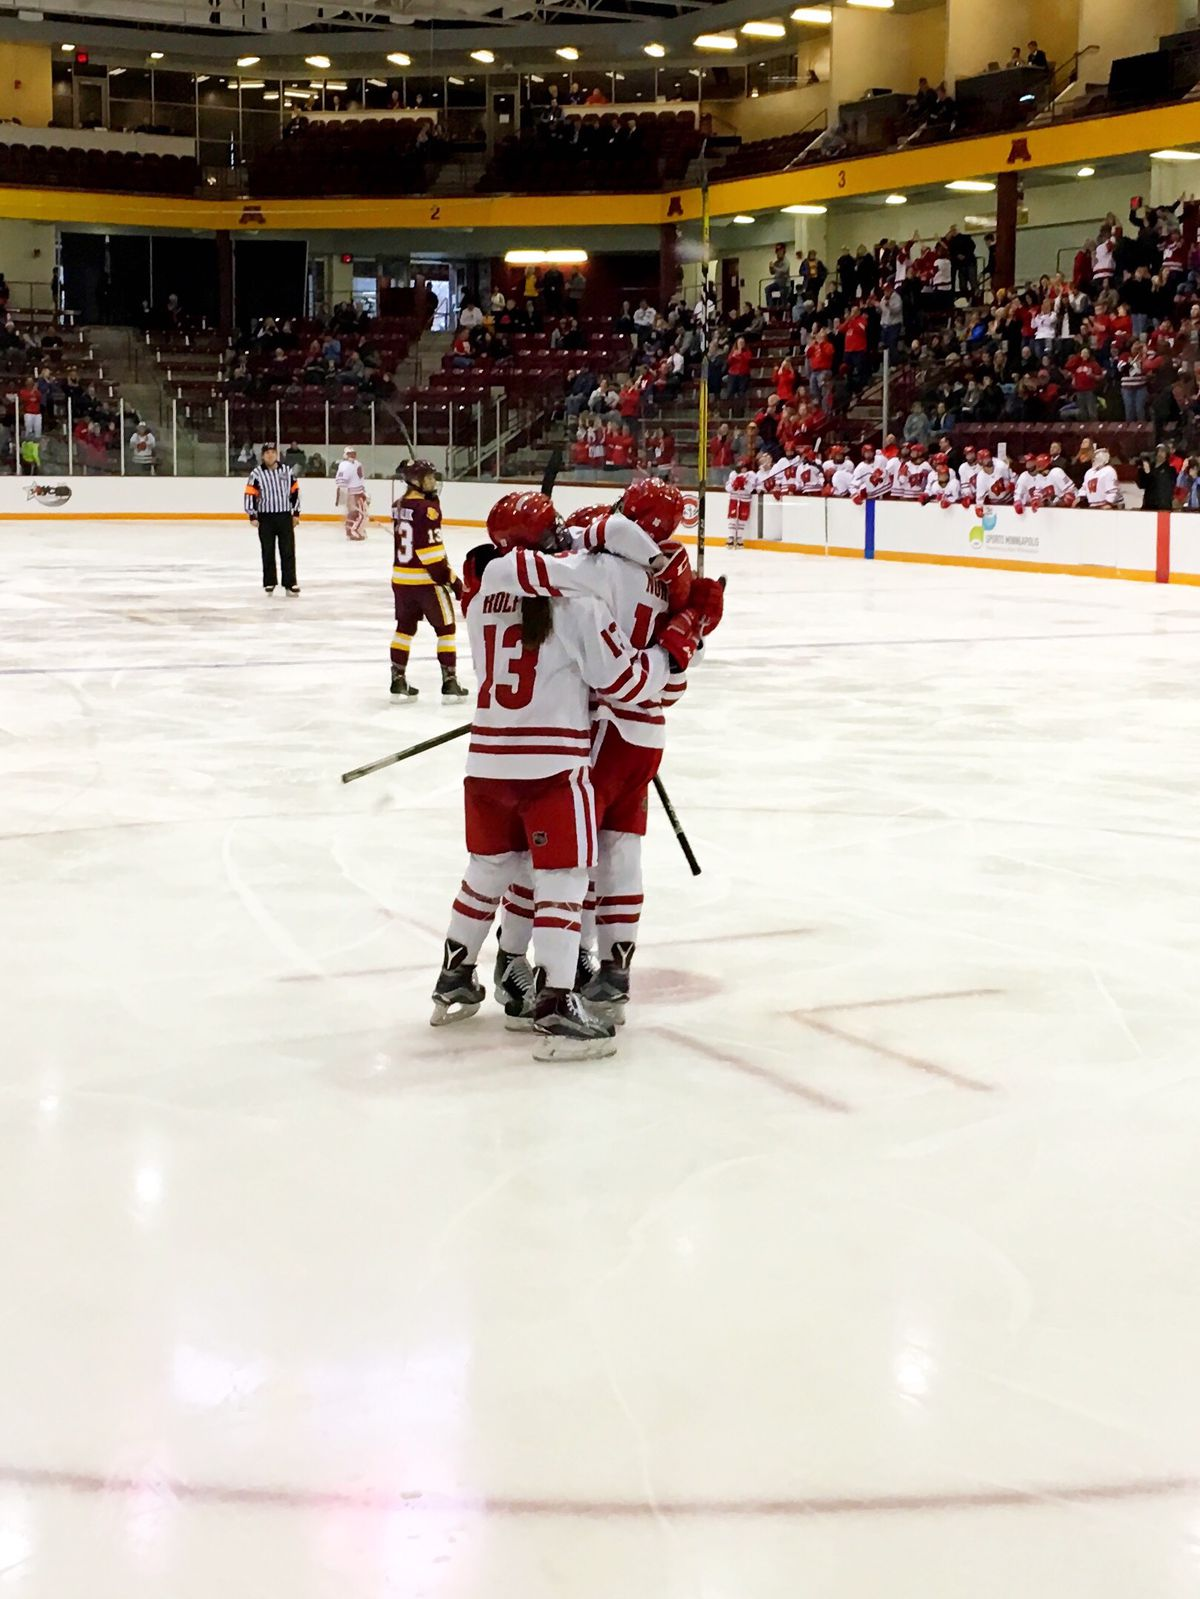 Wisconsin celebrating a goal during the 2017 WCHA tournament.